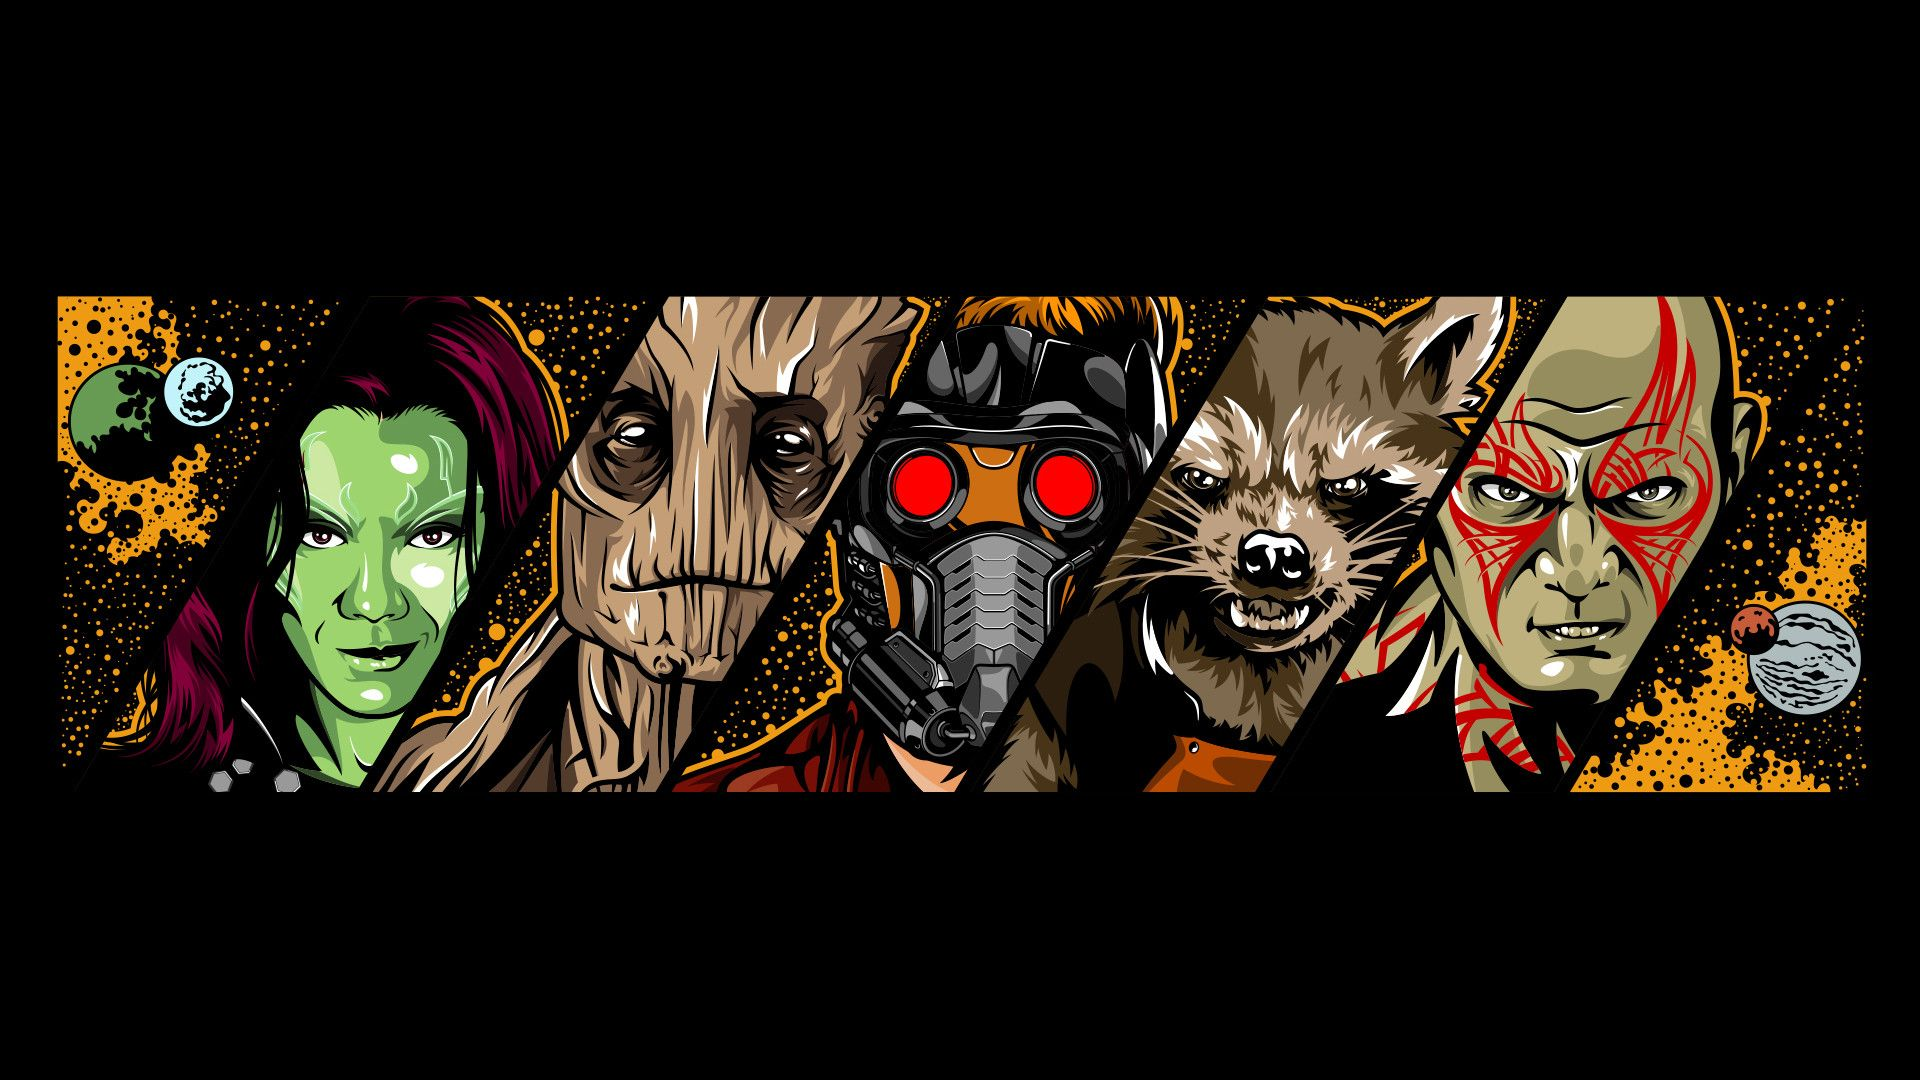 Guardians Of The Galaxy 1920x1080 Wallpapers Con Imagenes